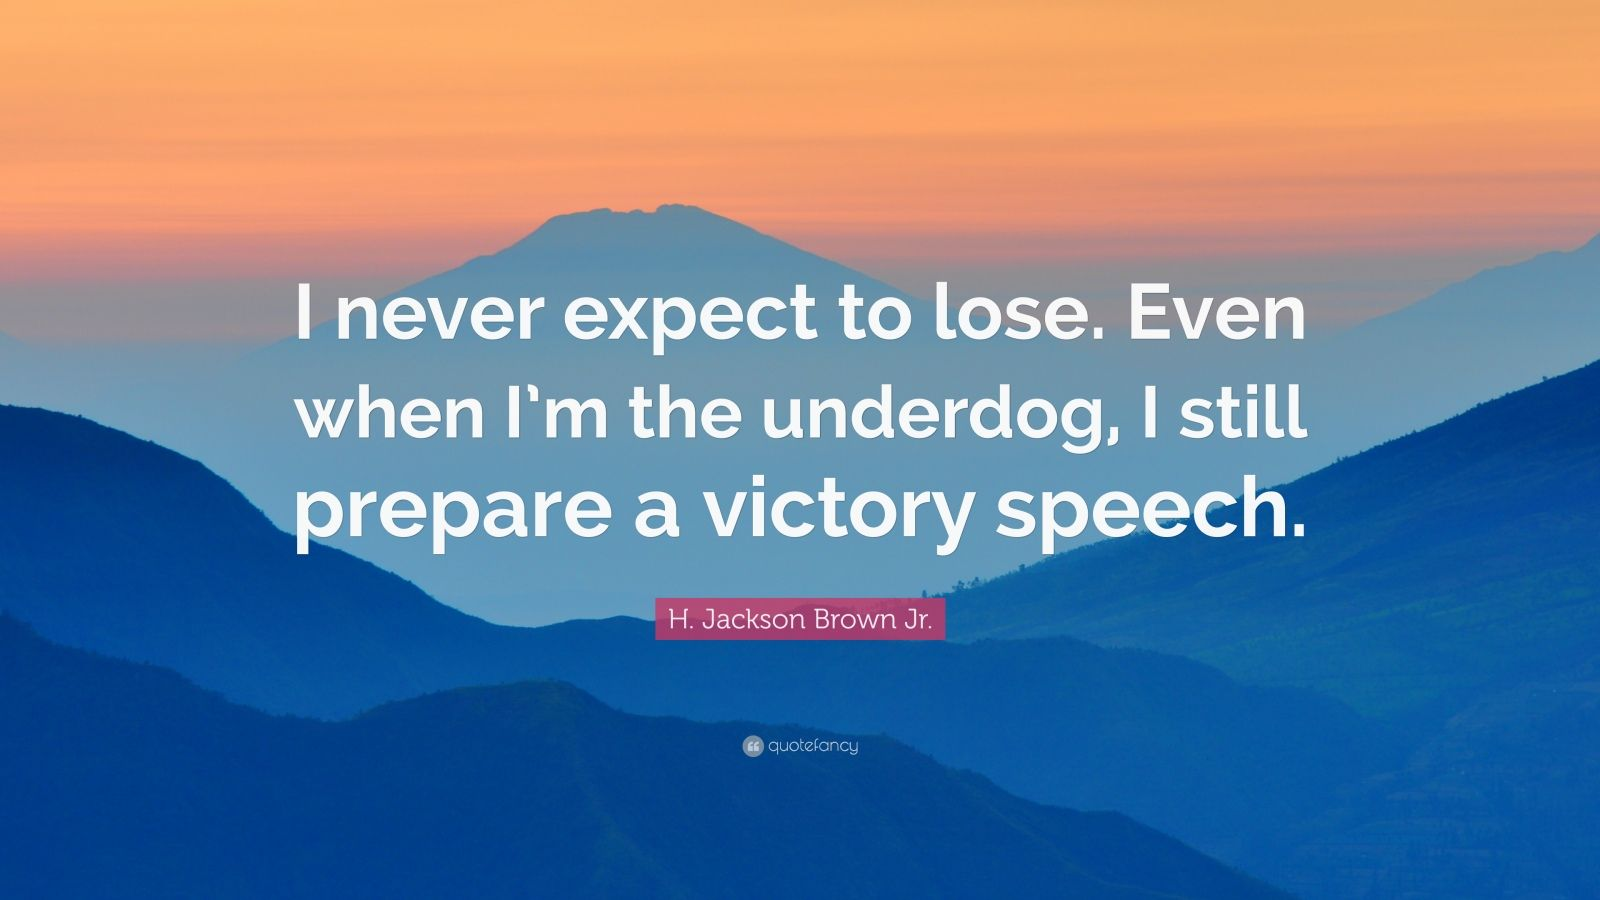 """H. Jackson Brown Jr. Quote: """"I never expect to lose. Even when I'm the underdog, I still prepare a victory speech."""""""